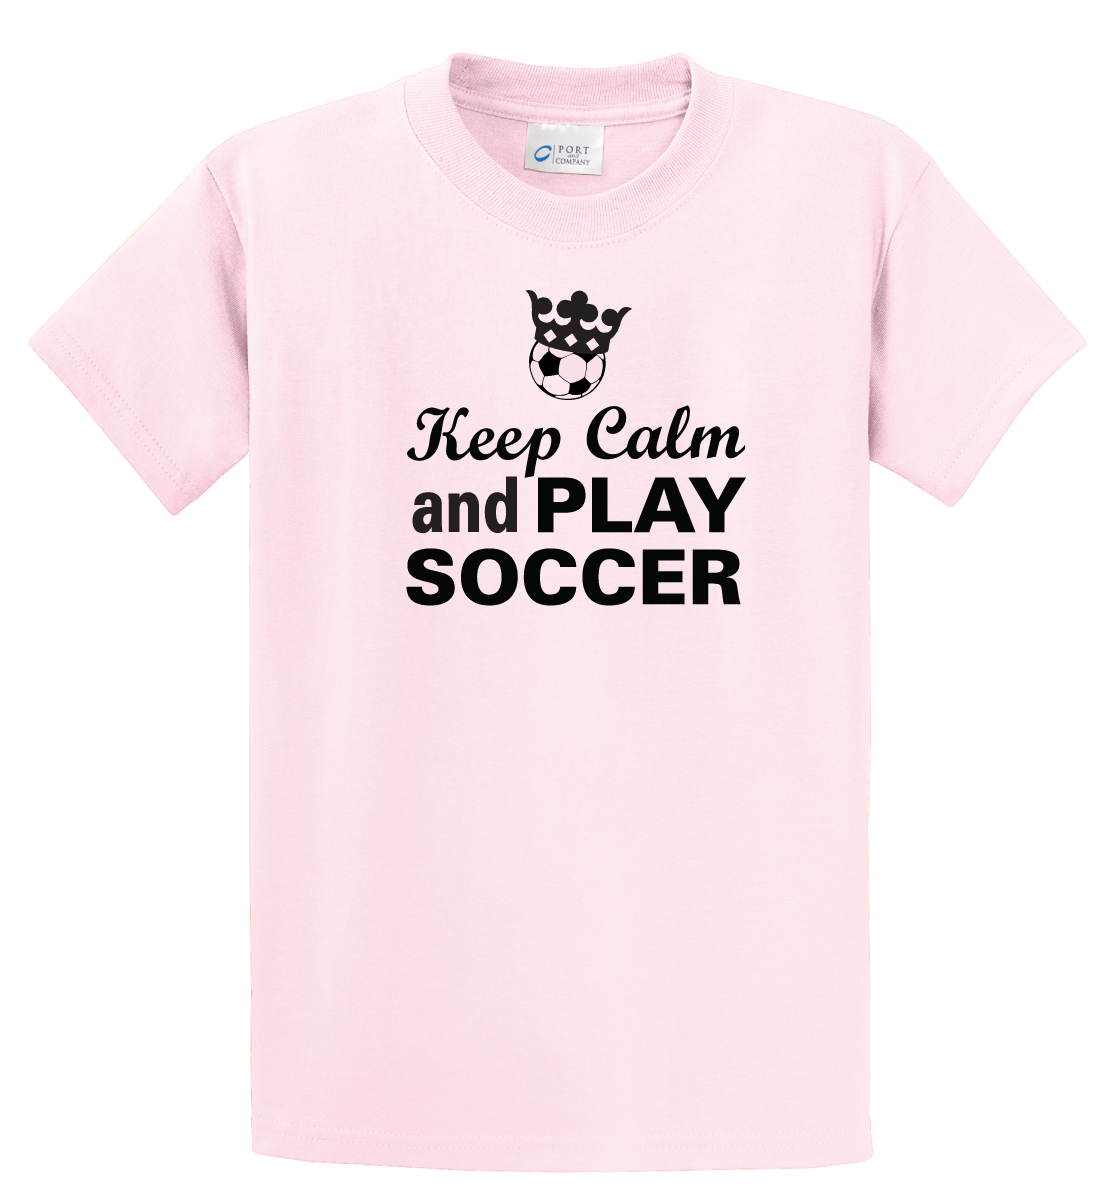 Keep Calm and Play Soccer Tshirt in pink by Code Four Athletics